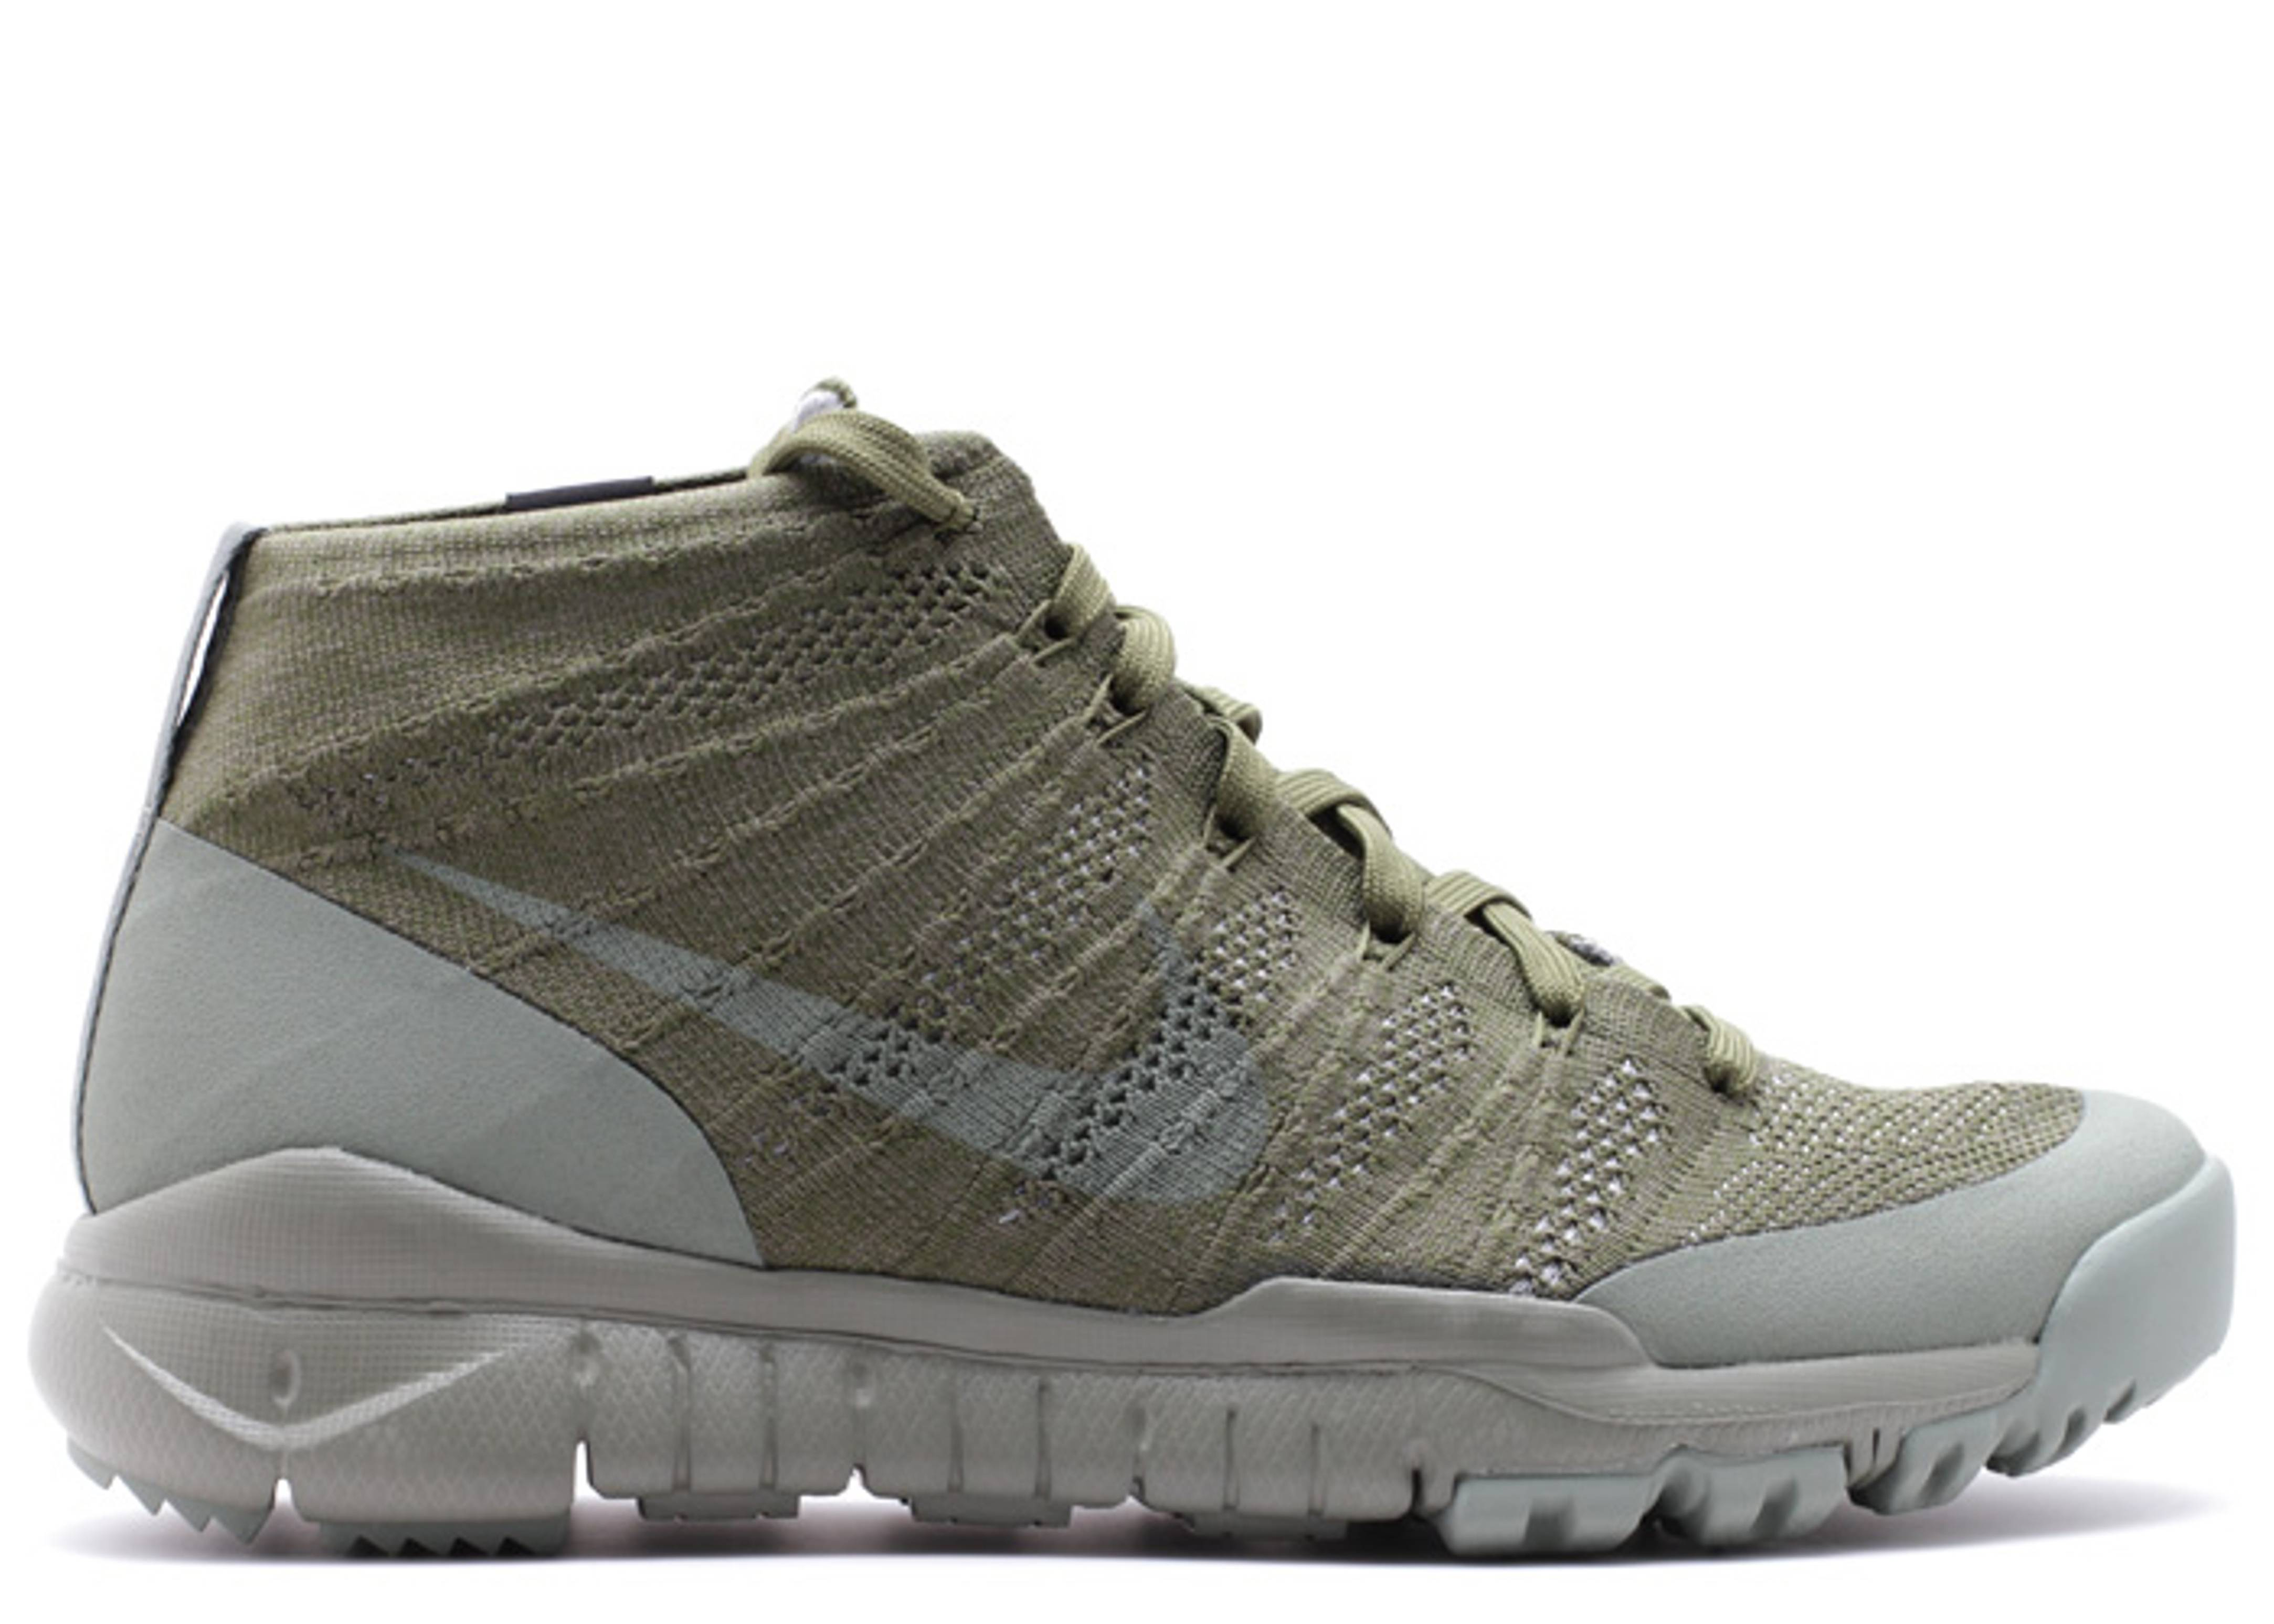 online store 7e8f5 a3940 nike. flyknit trainer chukka sfb sp